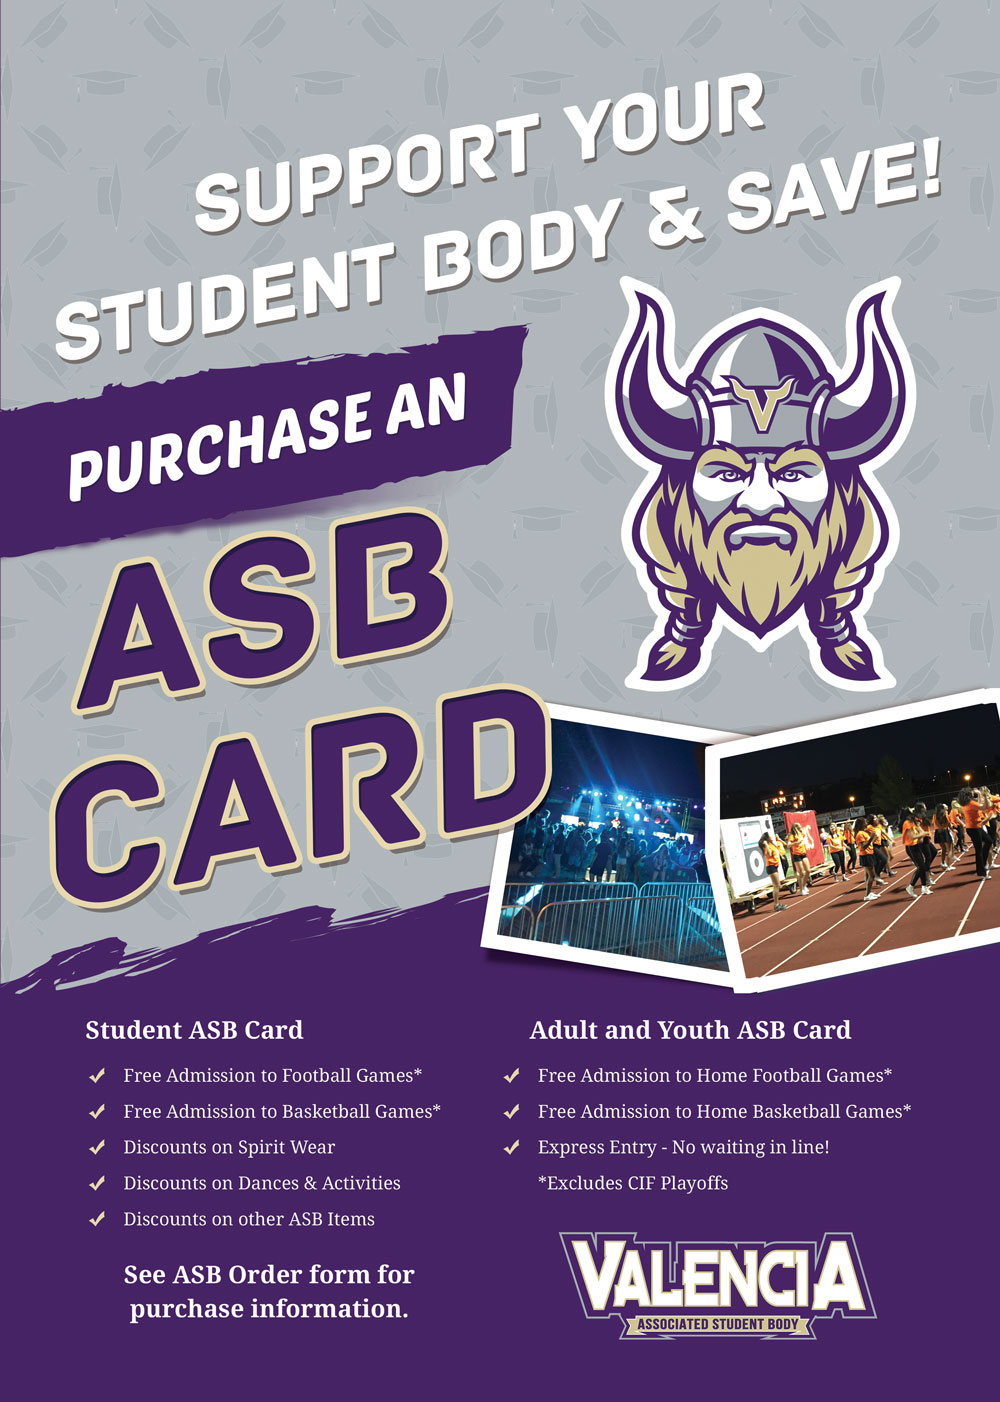 asb-card-flyer.jpg